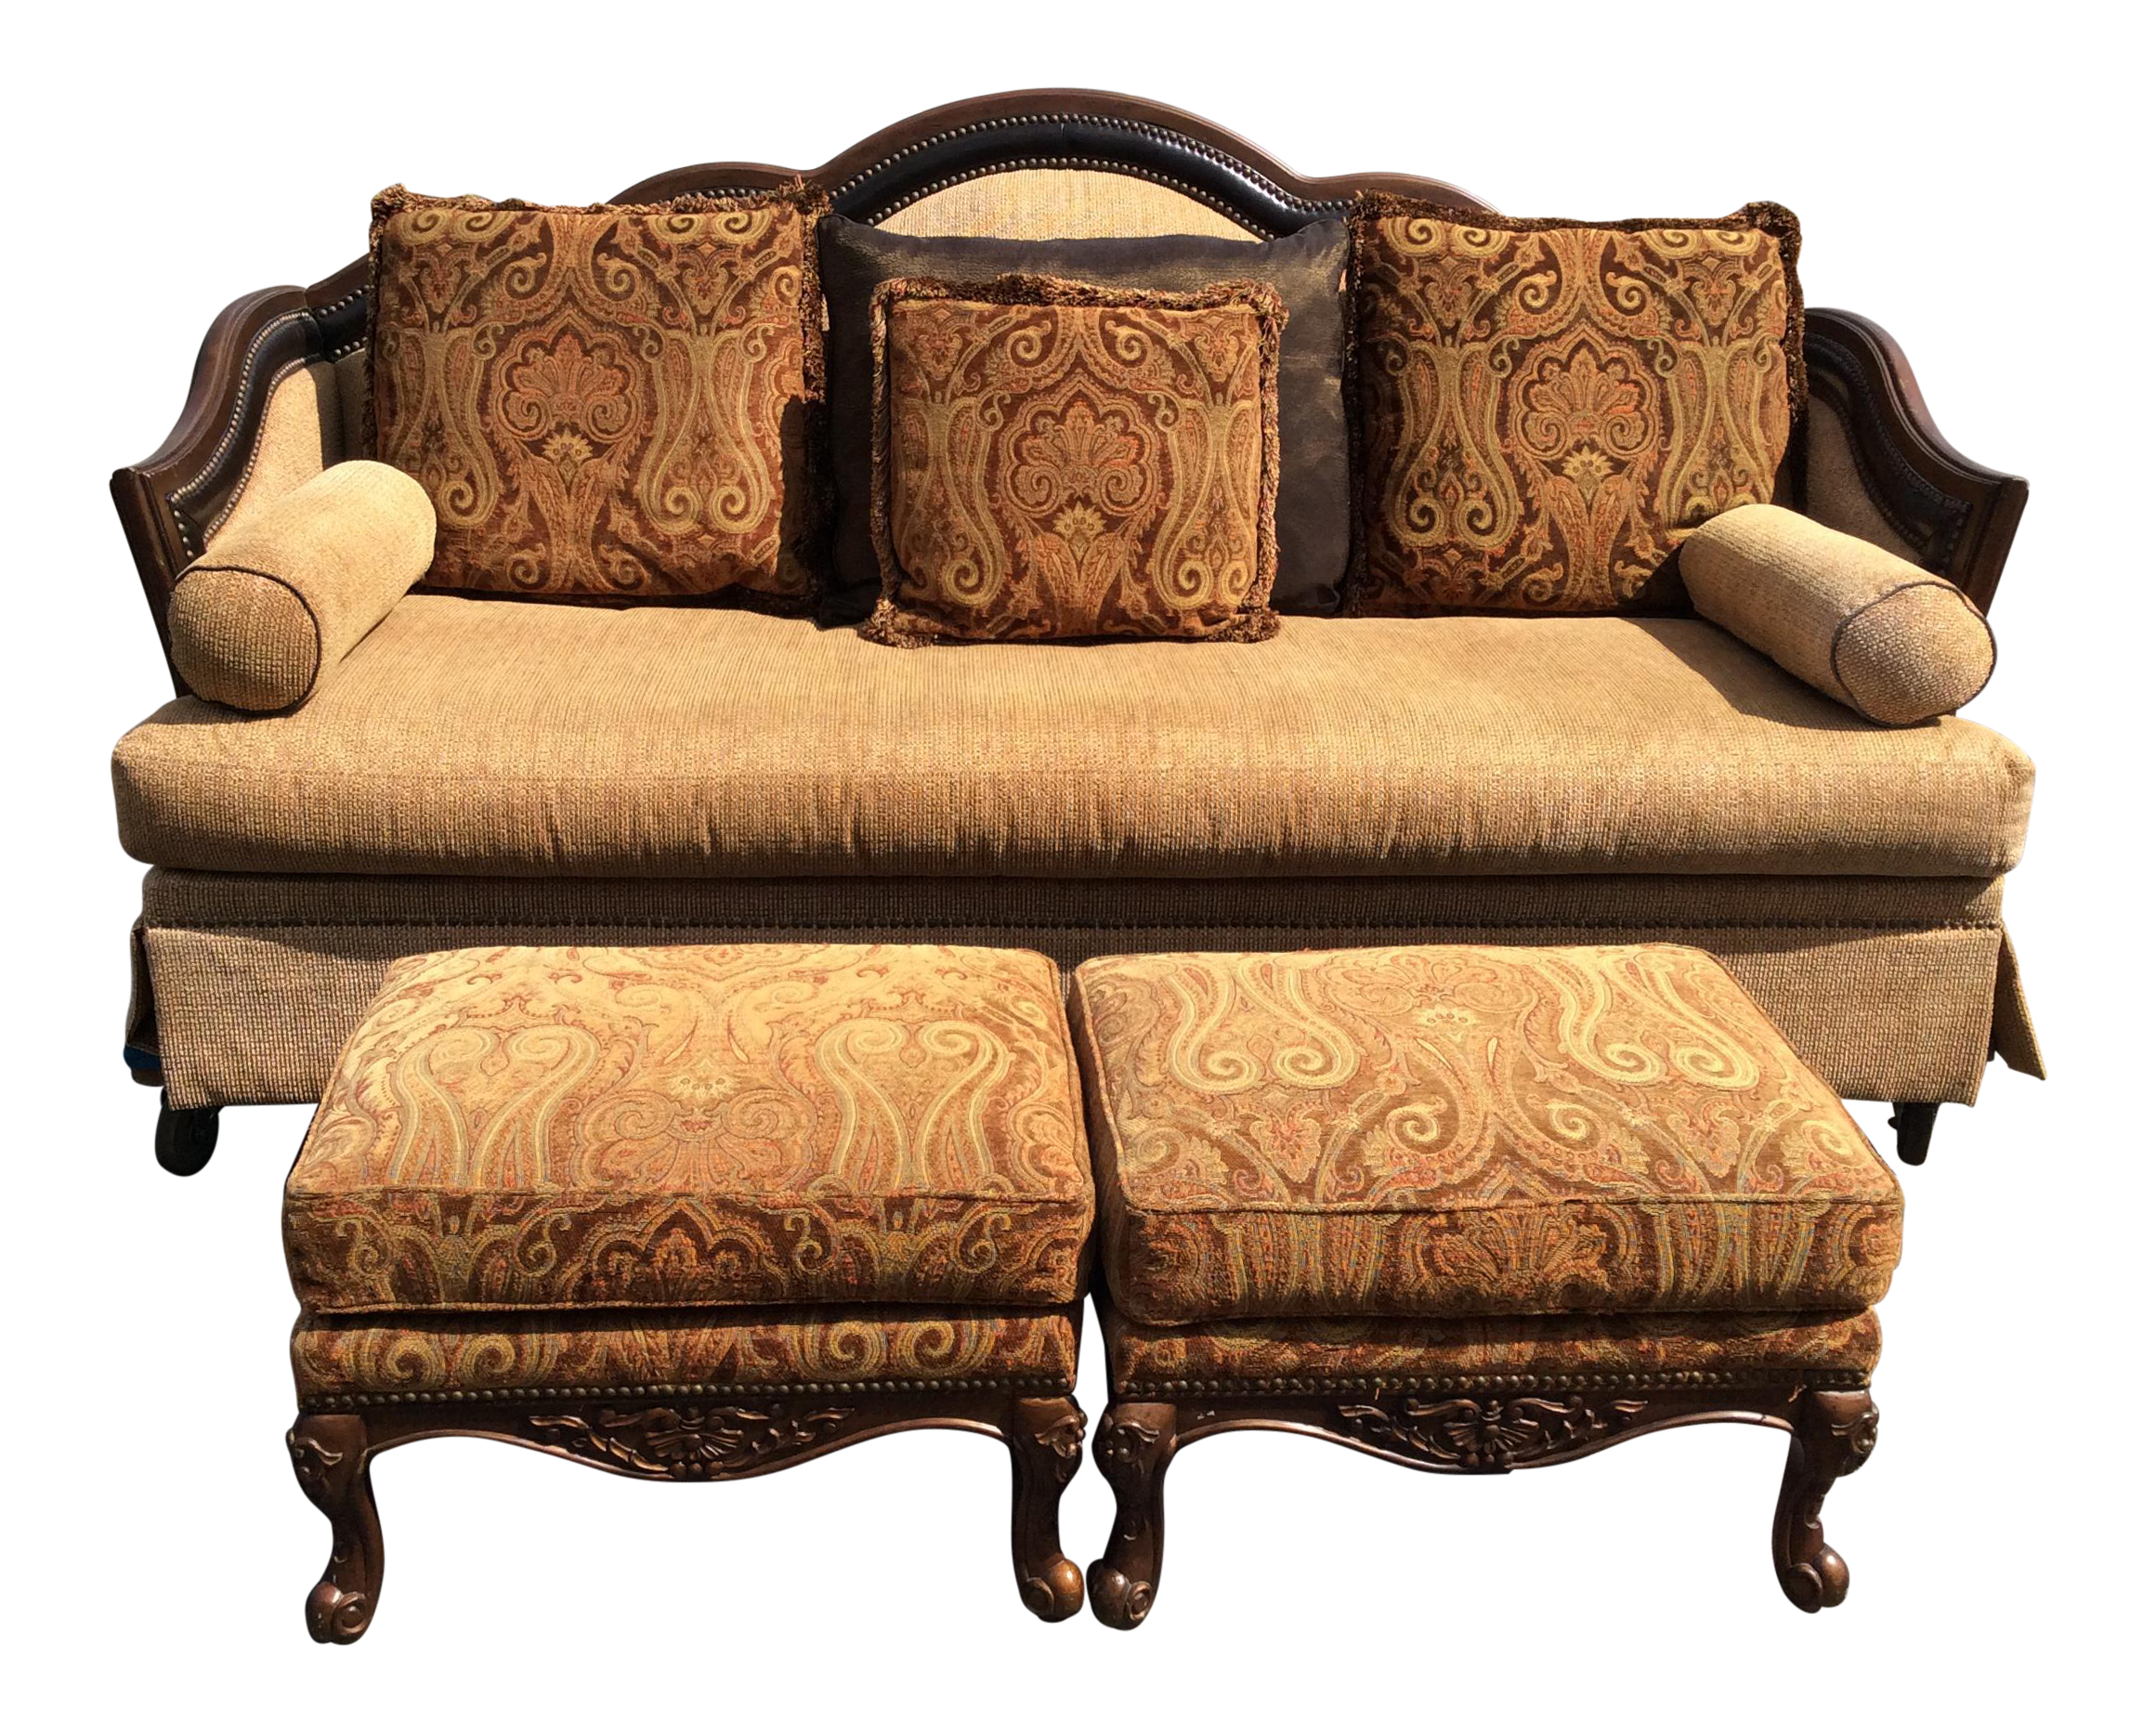 Chenille Sofa amp 2 Ottomans Chairish : chenille sofa and 2 ottomans 4246 from www.chairish.com size 2321 x 1867 png 6472kB